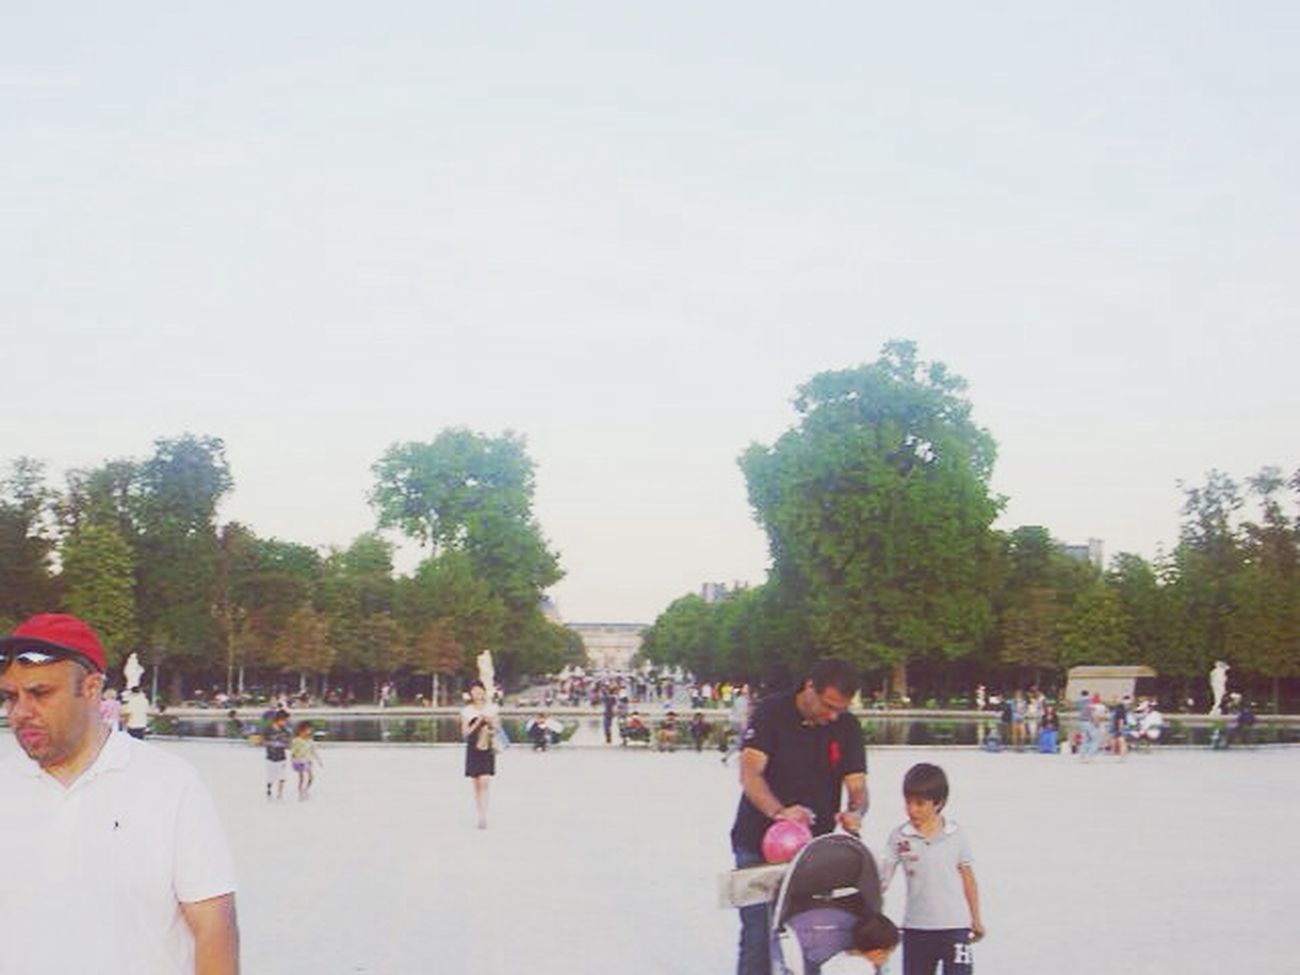 Wish I were there right know :( Paris Happy I Miss The Old Days